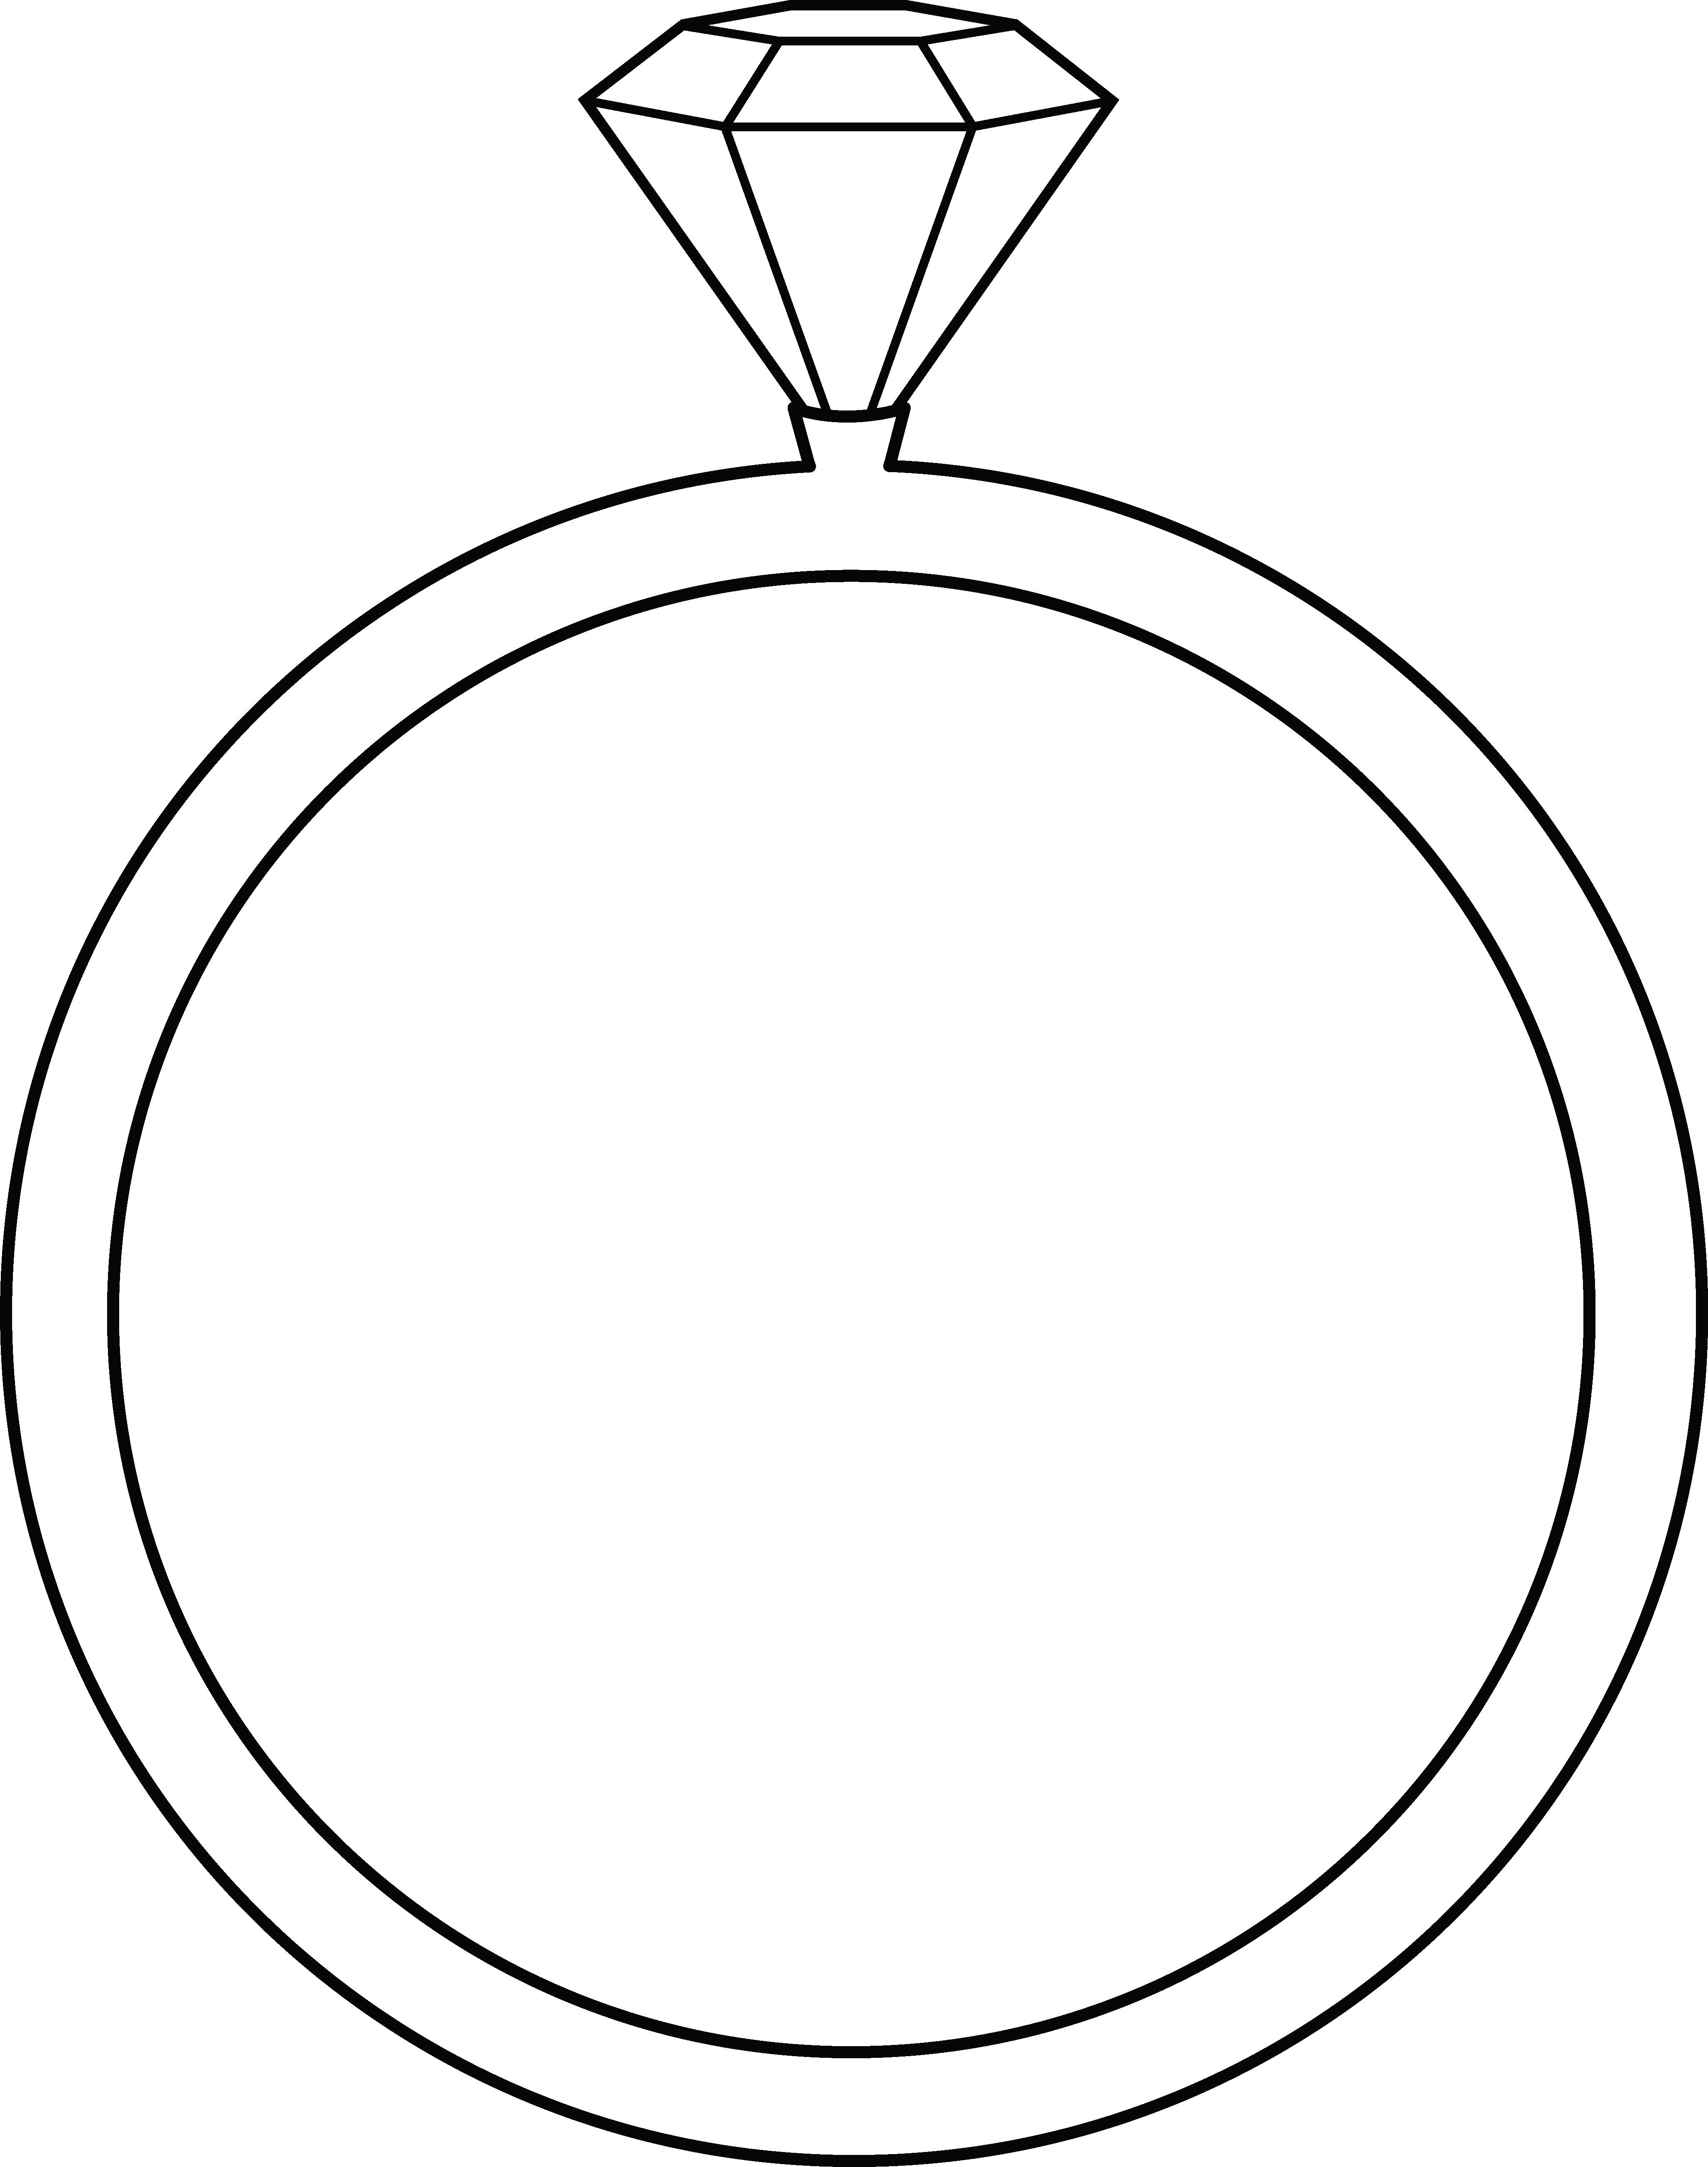 clipart of a diamond ring - photo #31